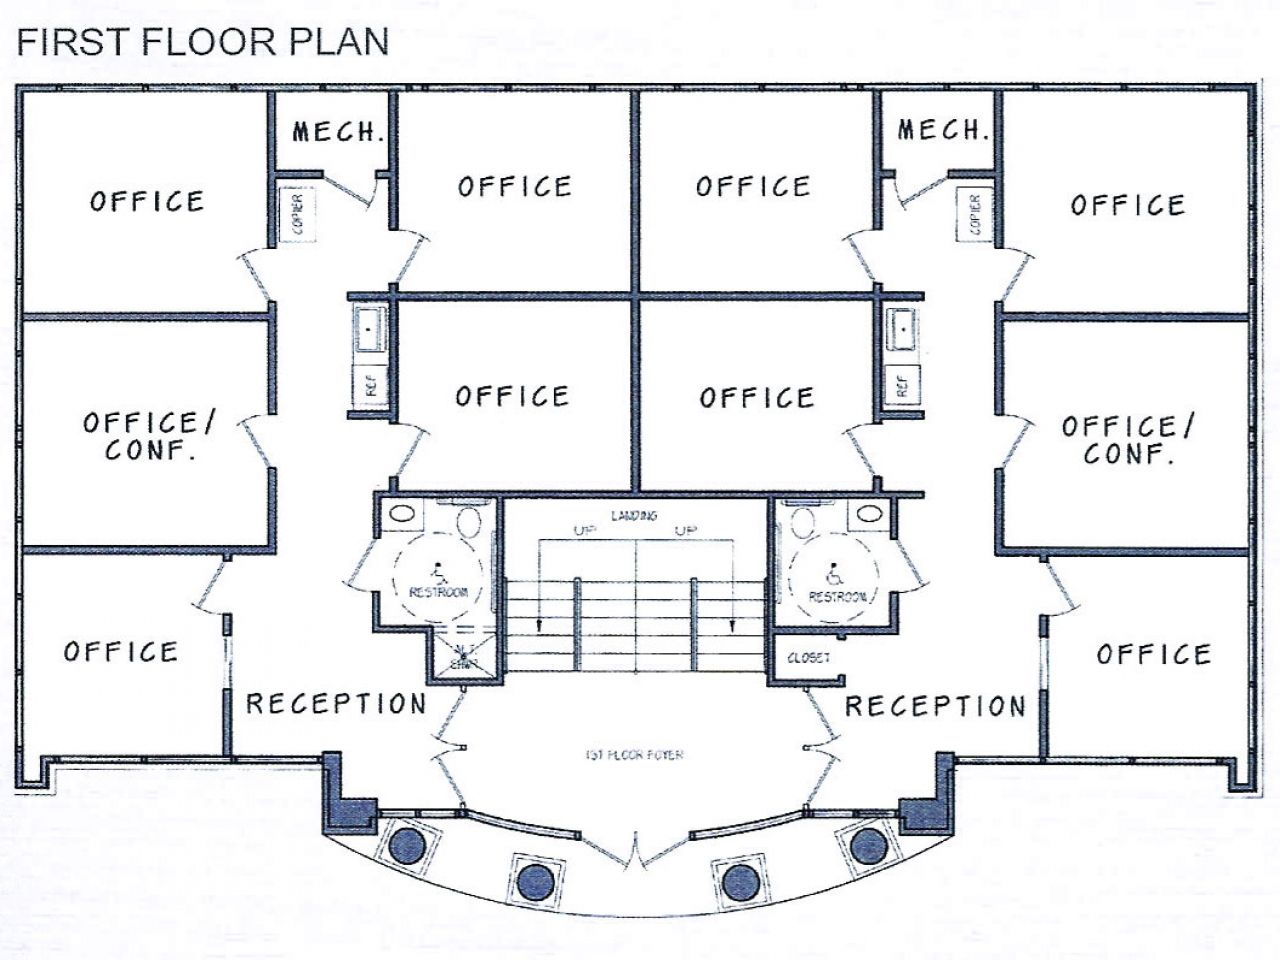 Small Commercial Office Building Plans Commercial Office Office Floor Plan Floor Plan Layout Office Building Plans